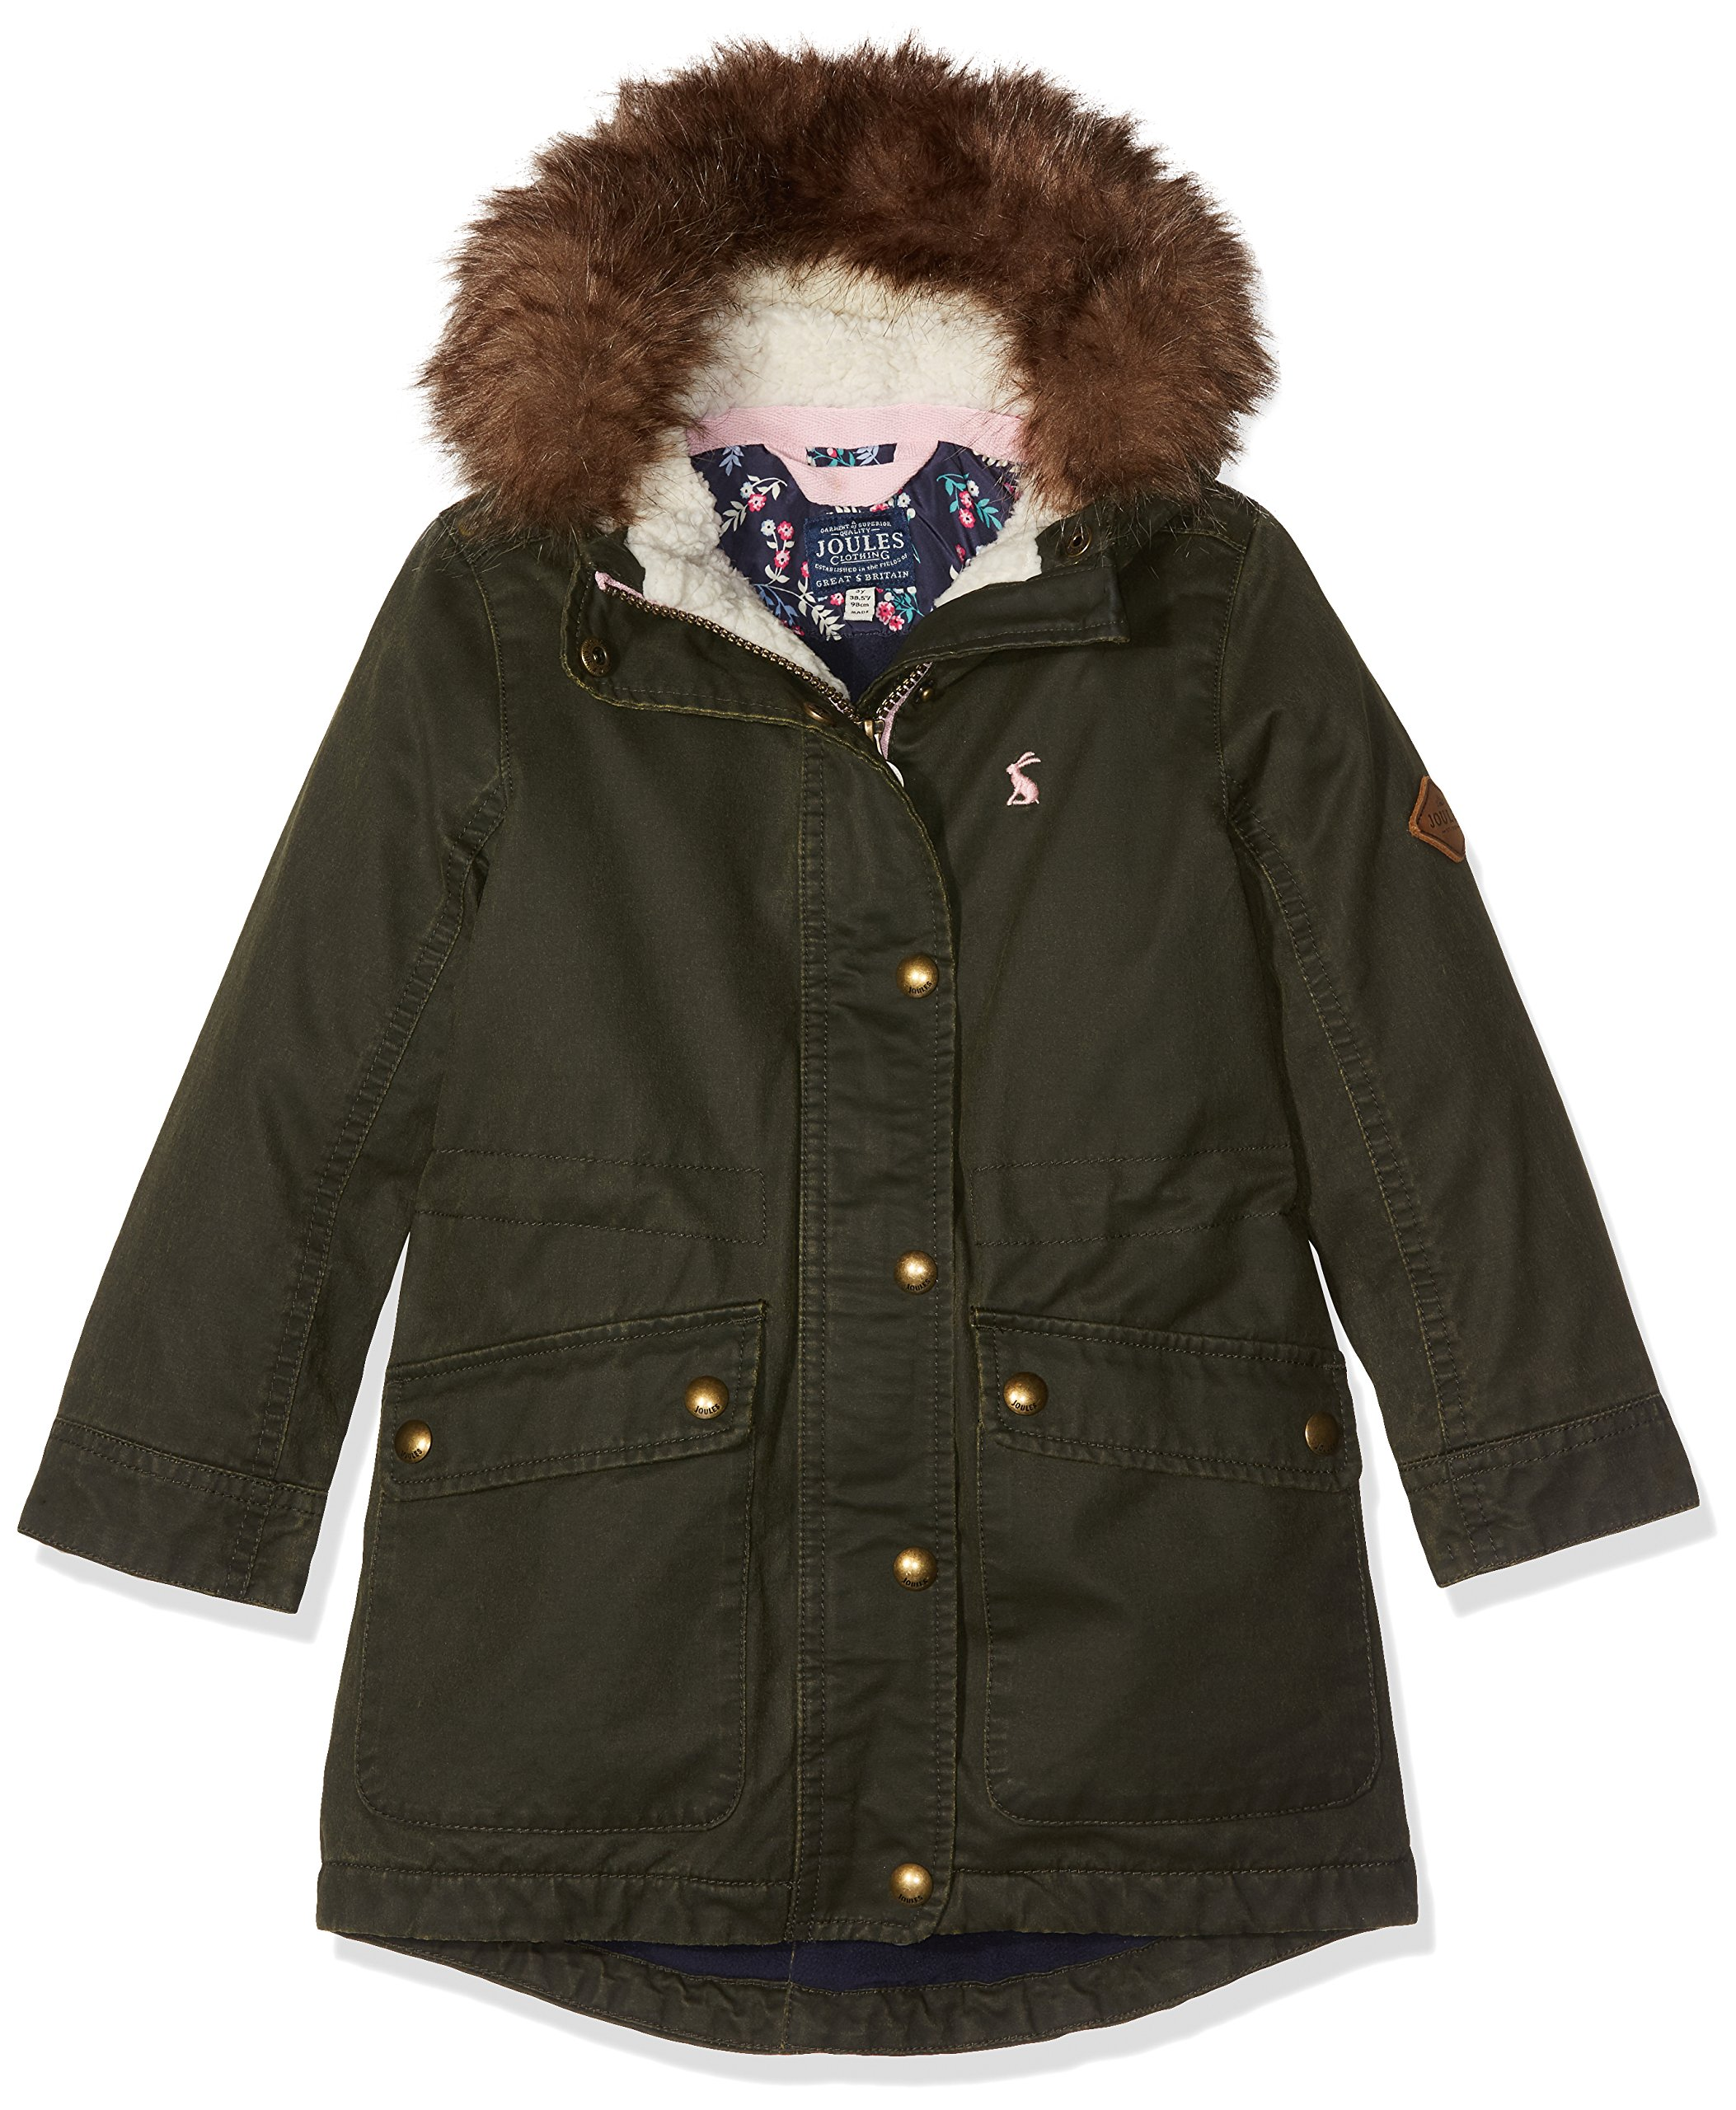 Joules Big Girls' Wynter Faux Wax Parka, Everglade, 9-10 by Joules (Image #1)